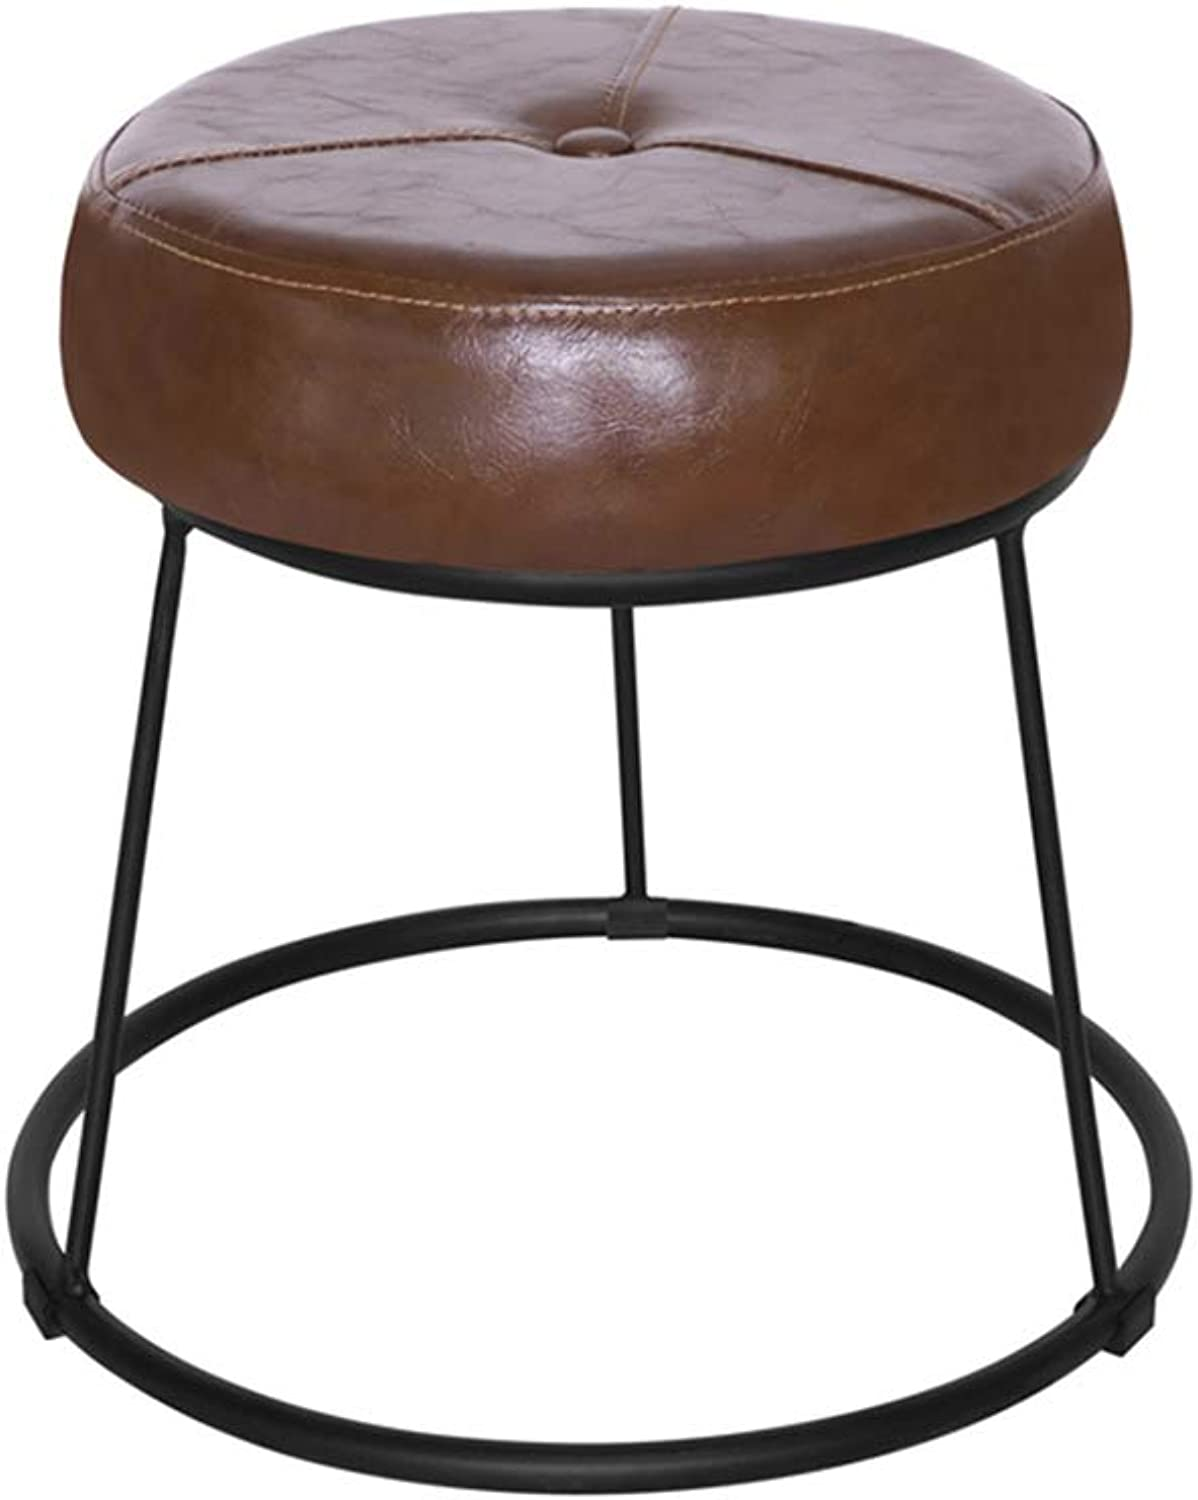 SMC stool Simple Modern Wrought Iron Leather Home Stool Bedroom Living Room Change shoes Bench Adult Dining Bench Bench (color   Brown)